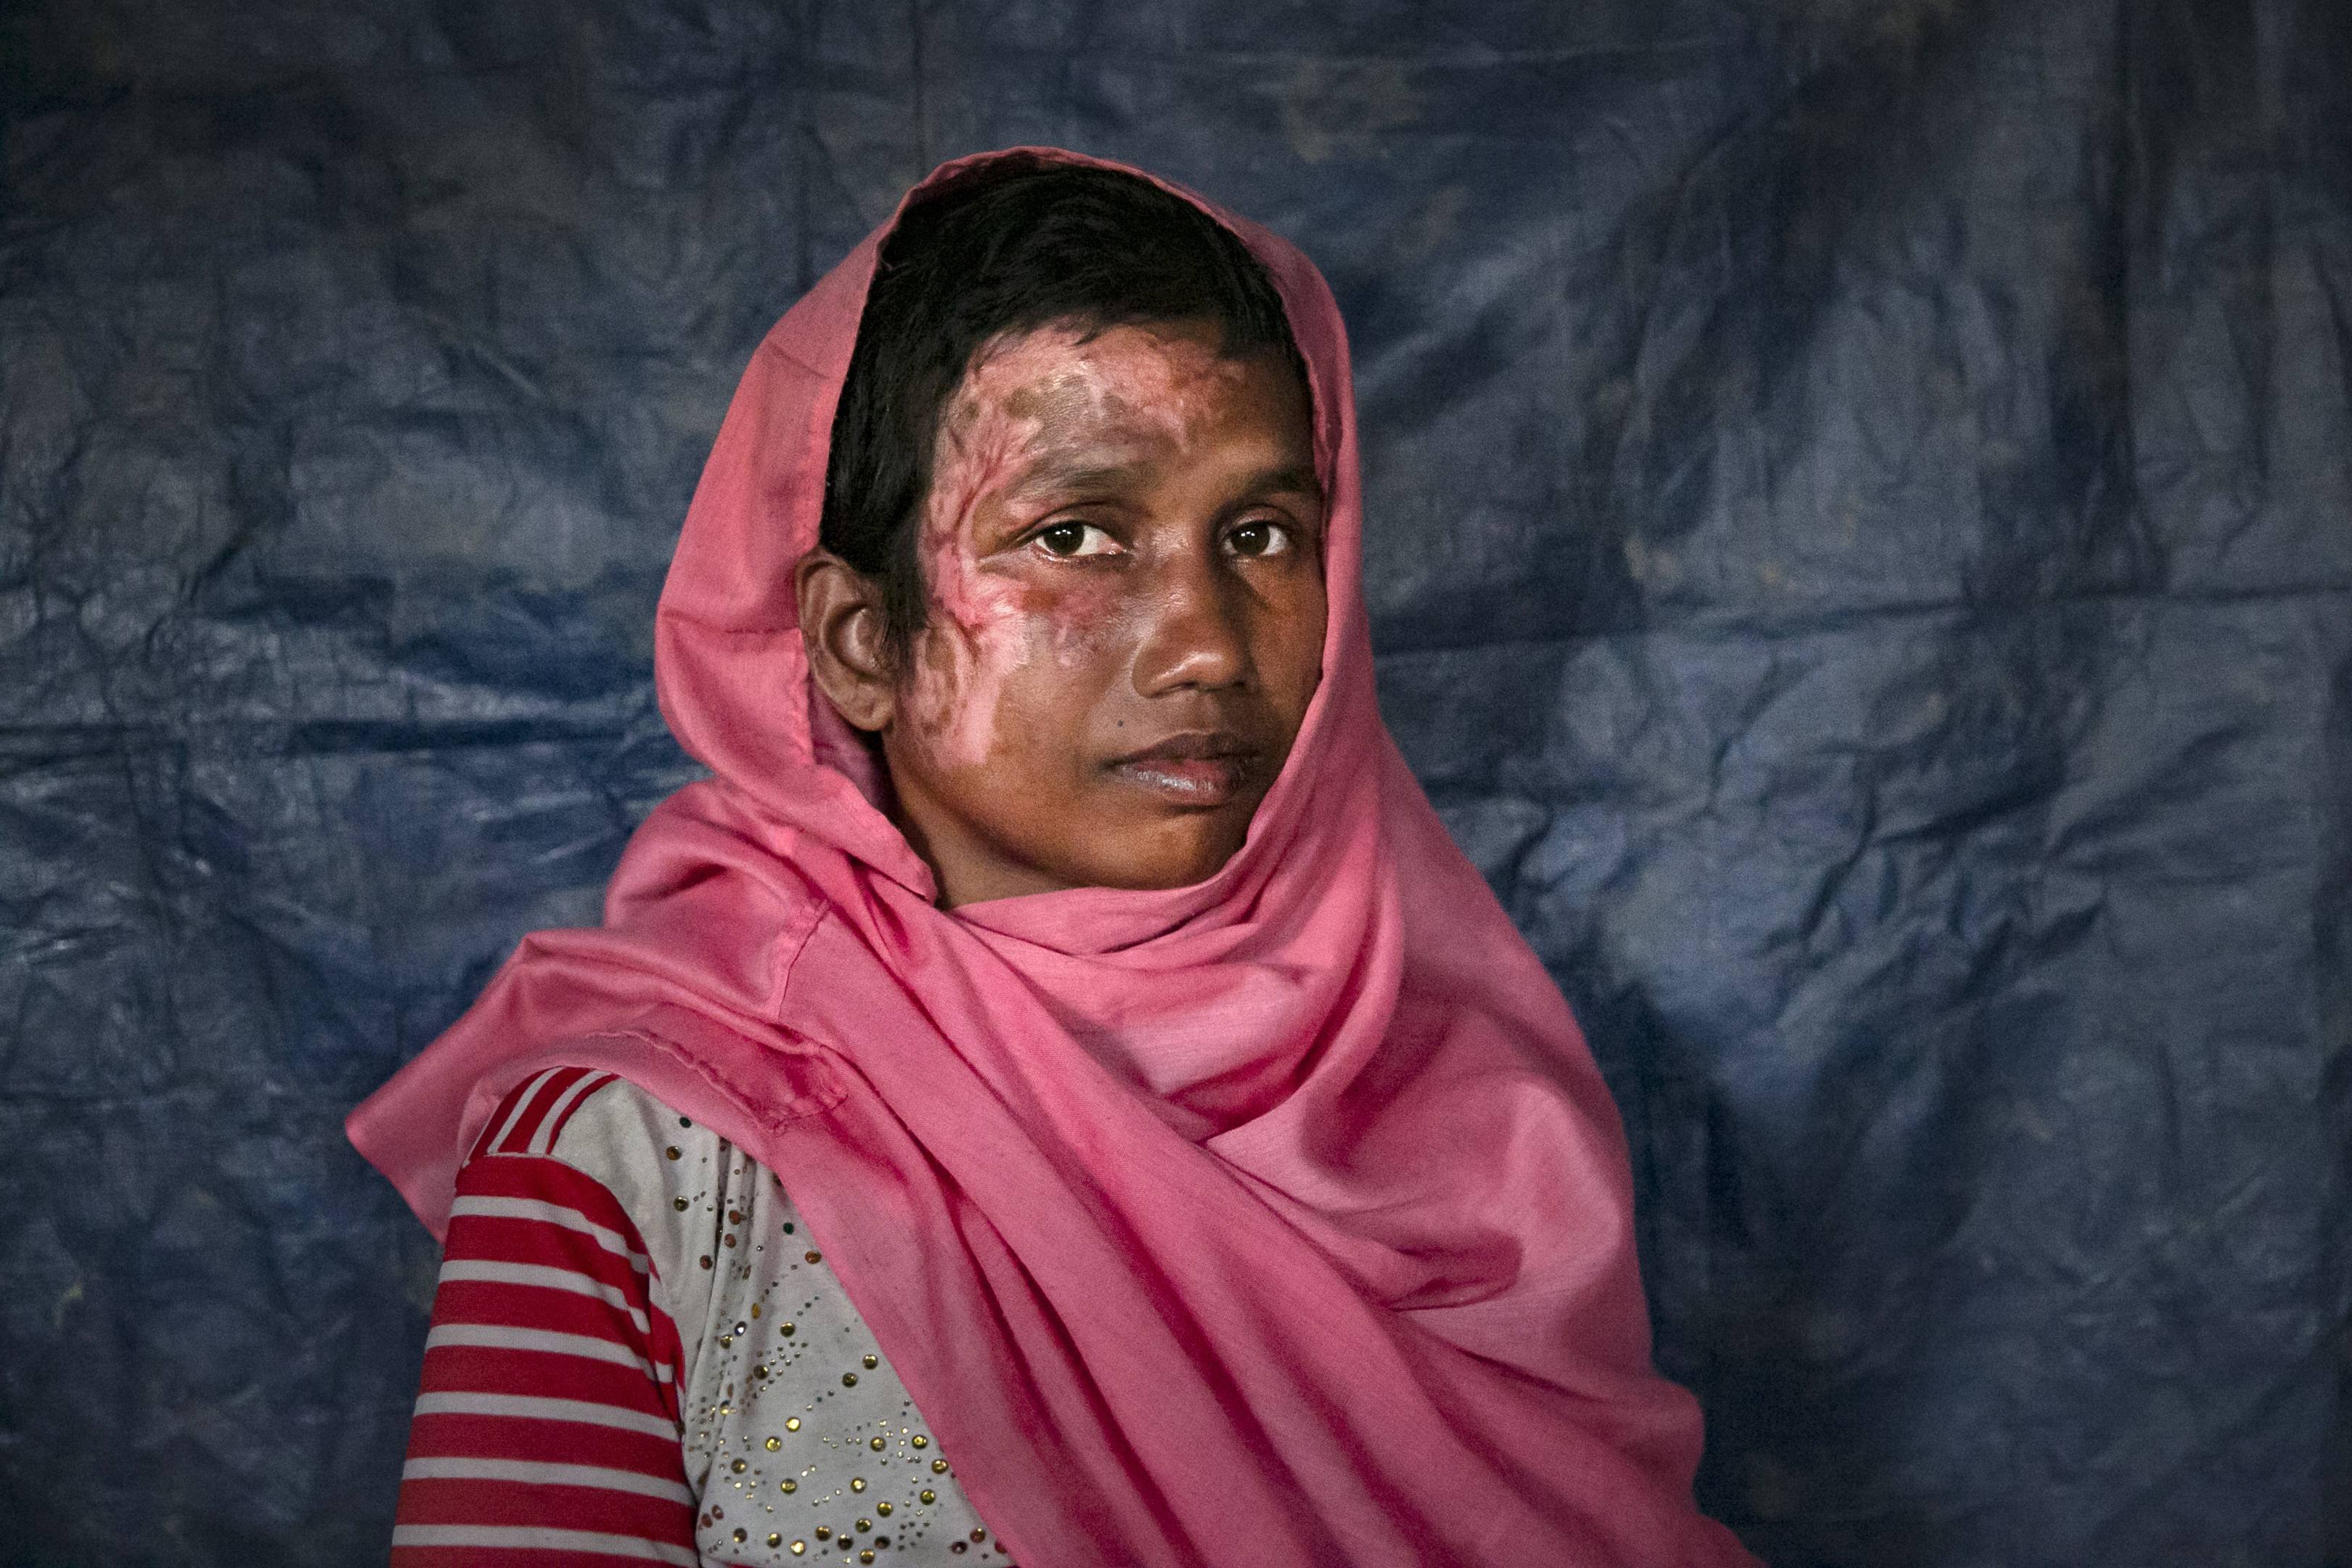 Tagged, tracked and in danger: how the Rohingya got caught